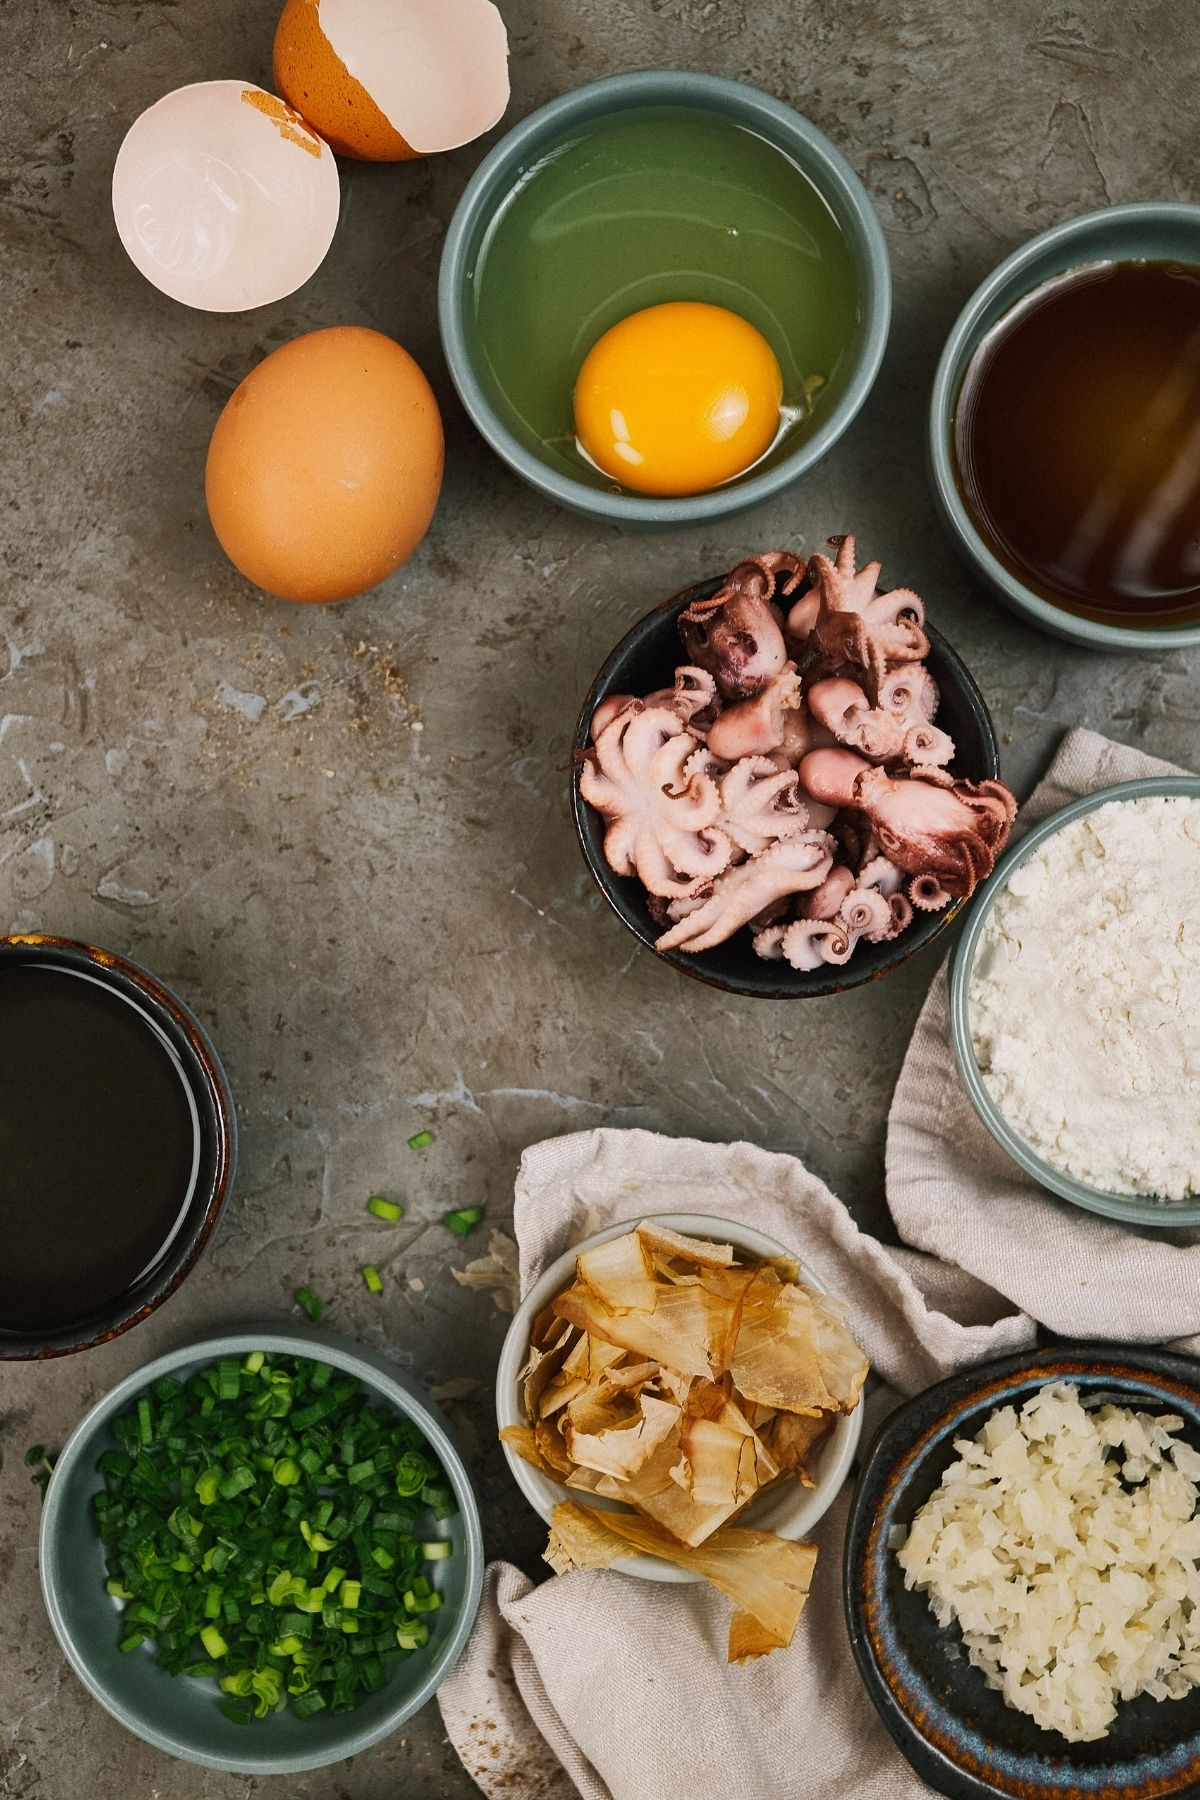 Octopus, eggs, and flour in bowls on gray table